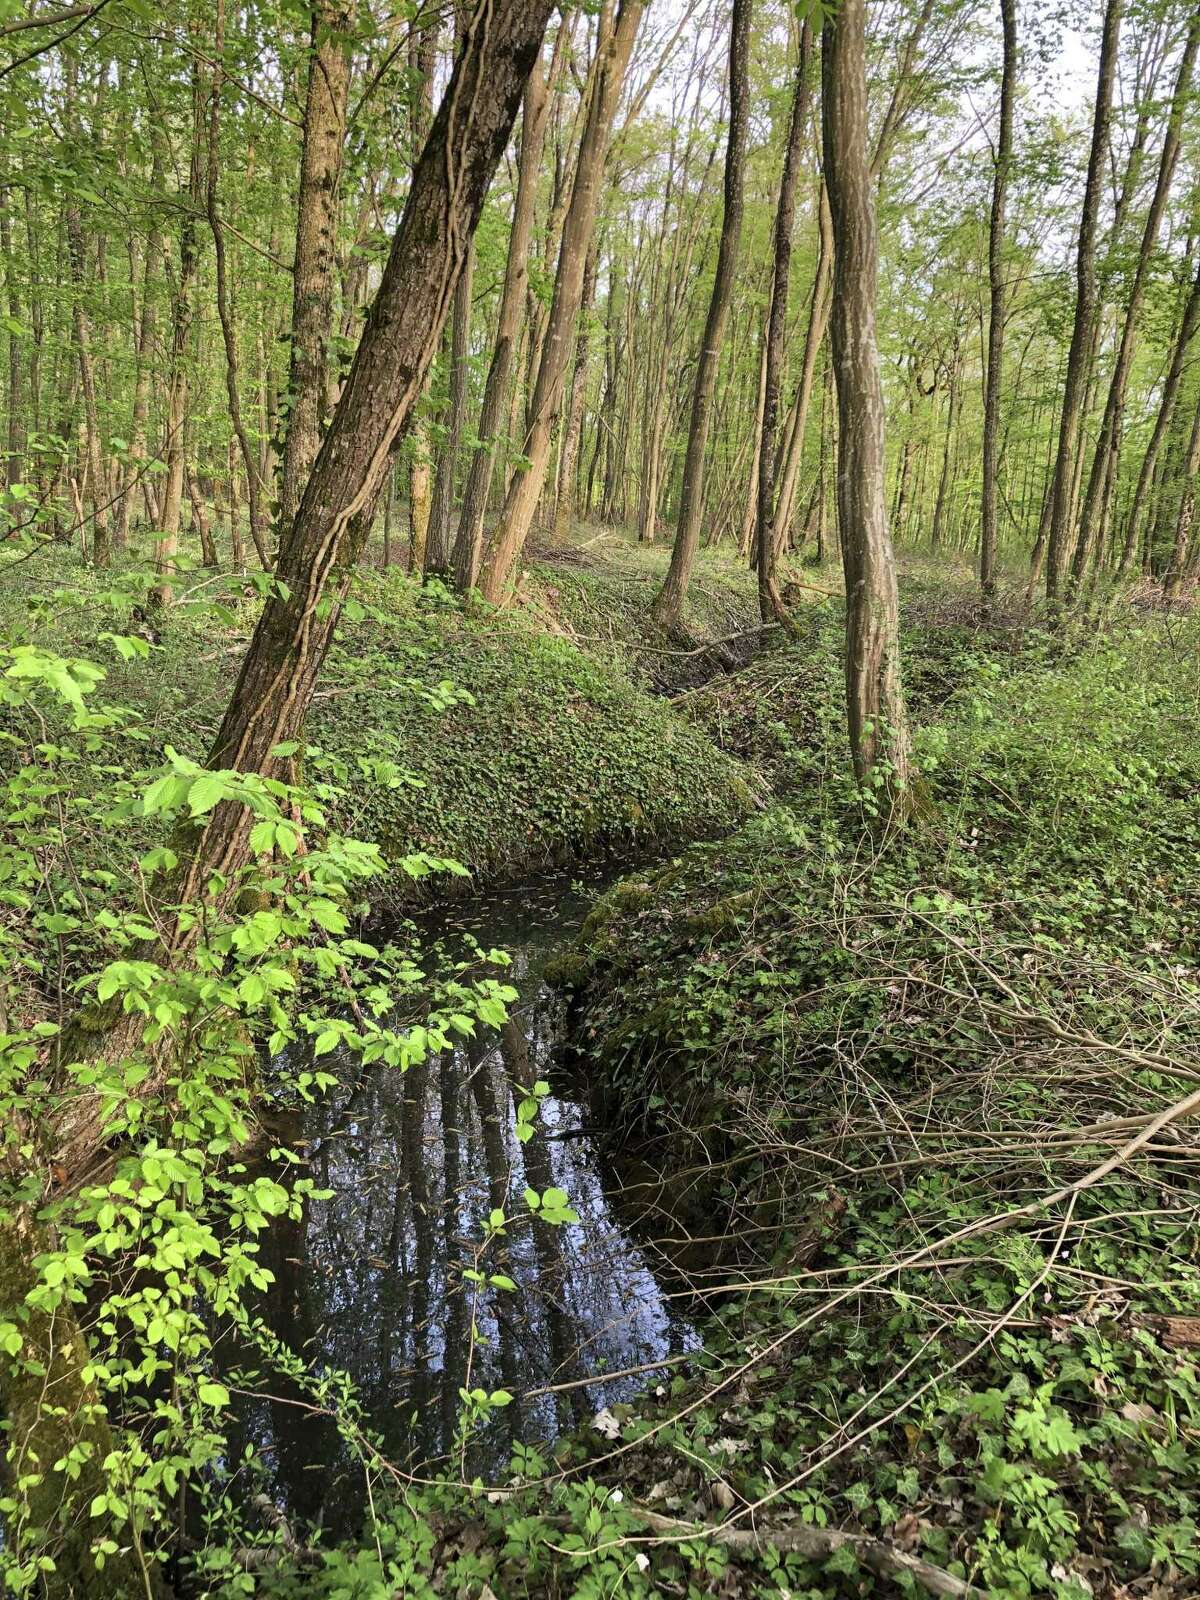 Photos of former trench areas in France, accompanied by photos of American soldiers in those same trenches during World War I, are part of a history project that 15 Connecticut students are taking part in this year.